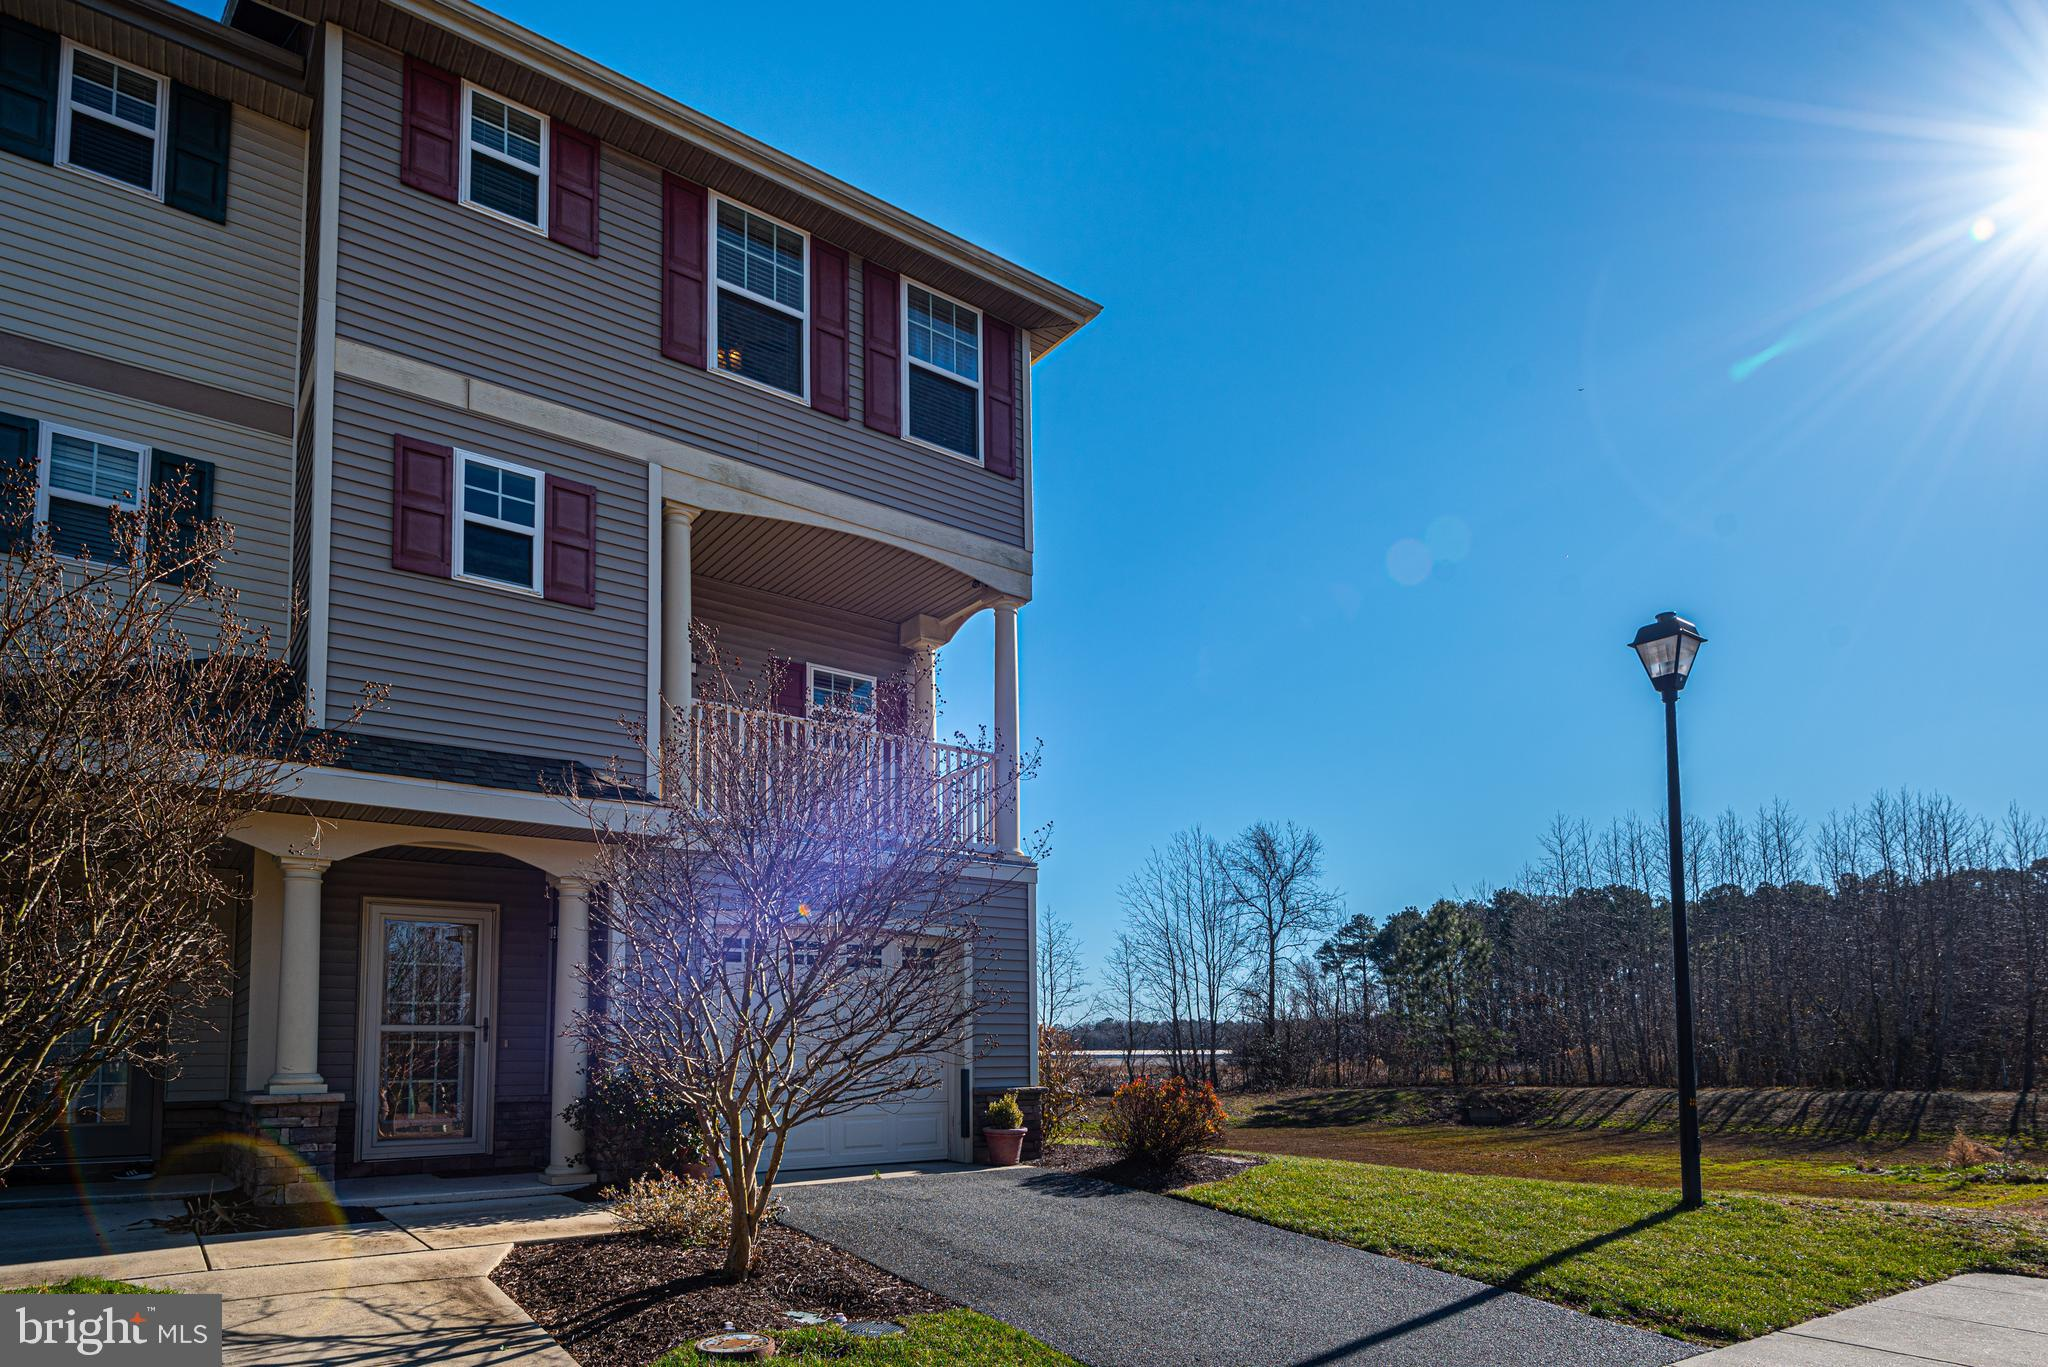 This end unit townhome - located in the community of Chapel Crossing in Dagsboro- is a short drive to the Bethany Beach area and close  to medical offices, schools, and many other conveniences.    Low maintenance living; all lawn care, exterior maintenance, master insurance, snow removal and trash collection is covered by the low condo fee of $630/quarter- as well as access to the community pool!  This unit offers the most private location within the community at the end of the street with open views of adjacent fields from the 1st floor patio and 2nd floor balconies.   The main level offers an open floor plan perfect for entertaining with corner fireplace, hardwood and tile flooring and kitchen upgrades including corian and stainless.   Entry level bedroom suite as well as 2 additional bedroom suites on the top floor.  Large closets on every level provide ample storage space.   Perfect for primary residence or second home- make this your coastal retreat today!